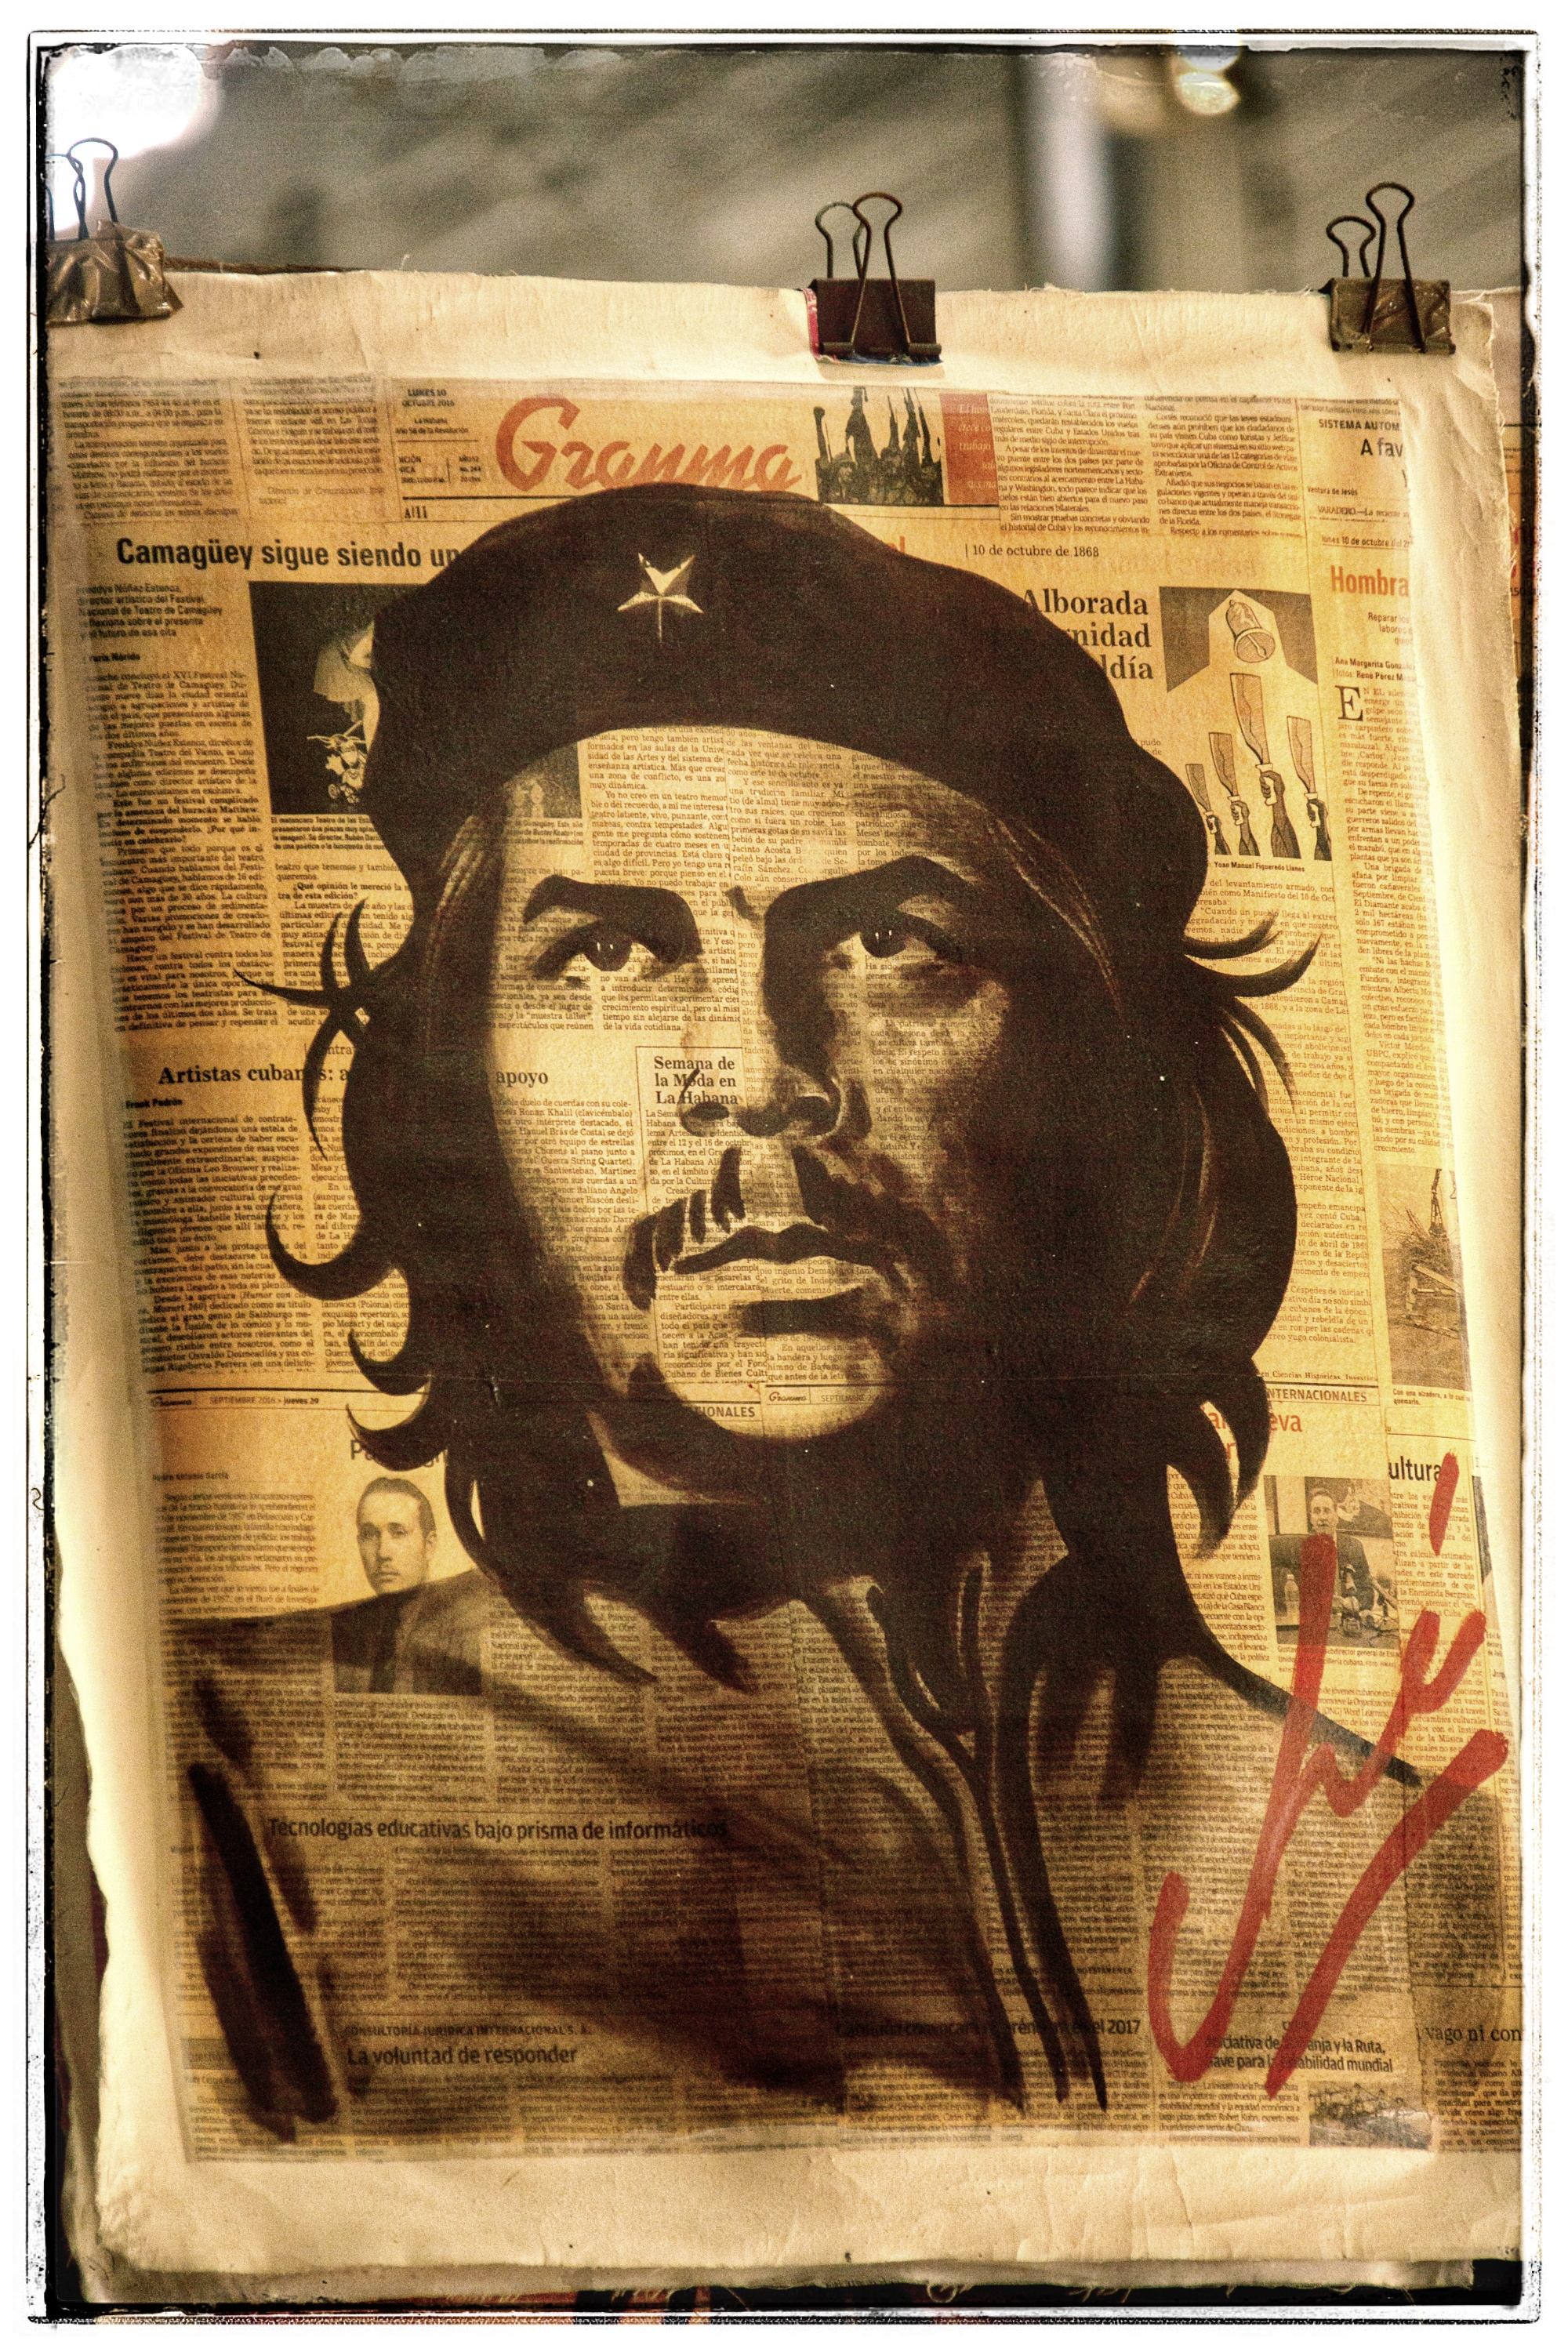 Che (a mass murderer and founder of the Cuban secret police) is revered here. His likeness is everywhere. They have no clue about the truth of this charismatic leader.